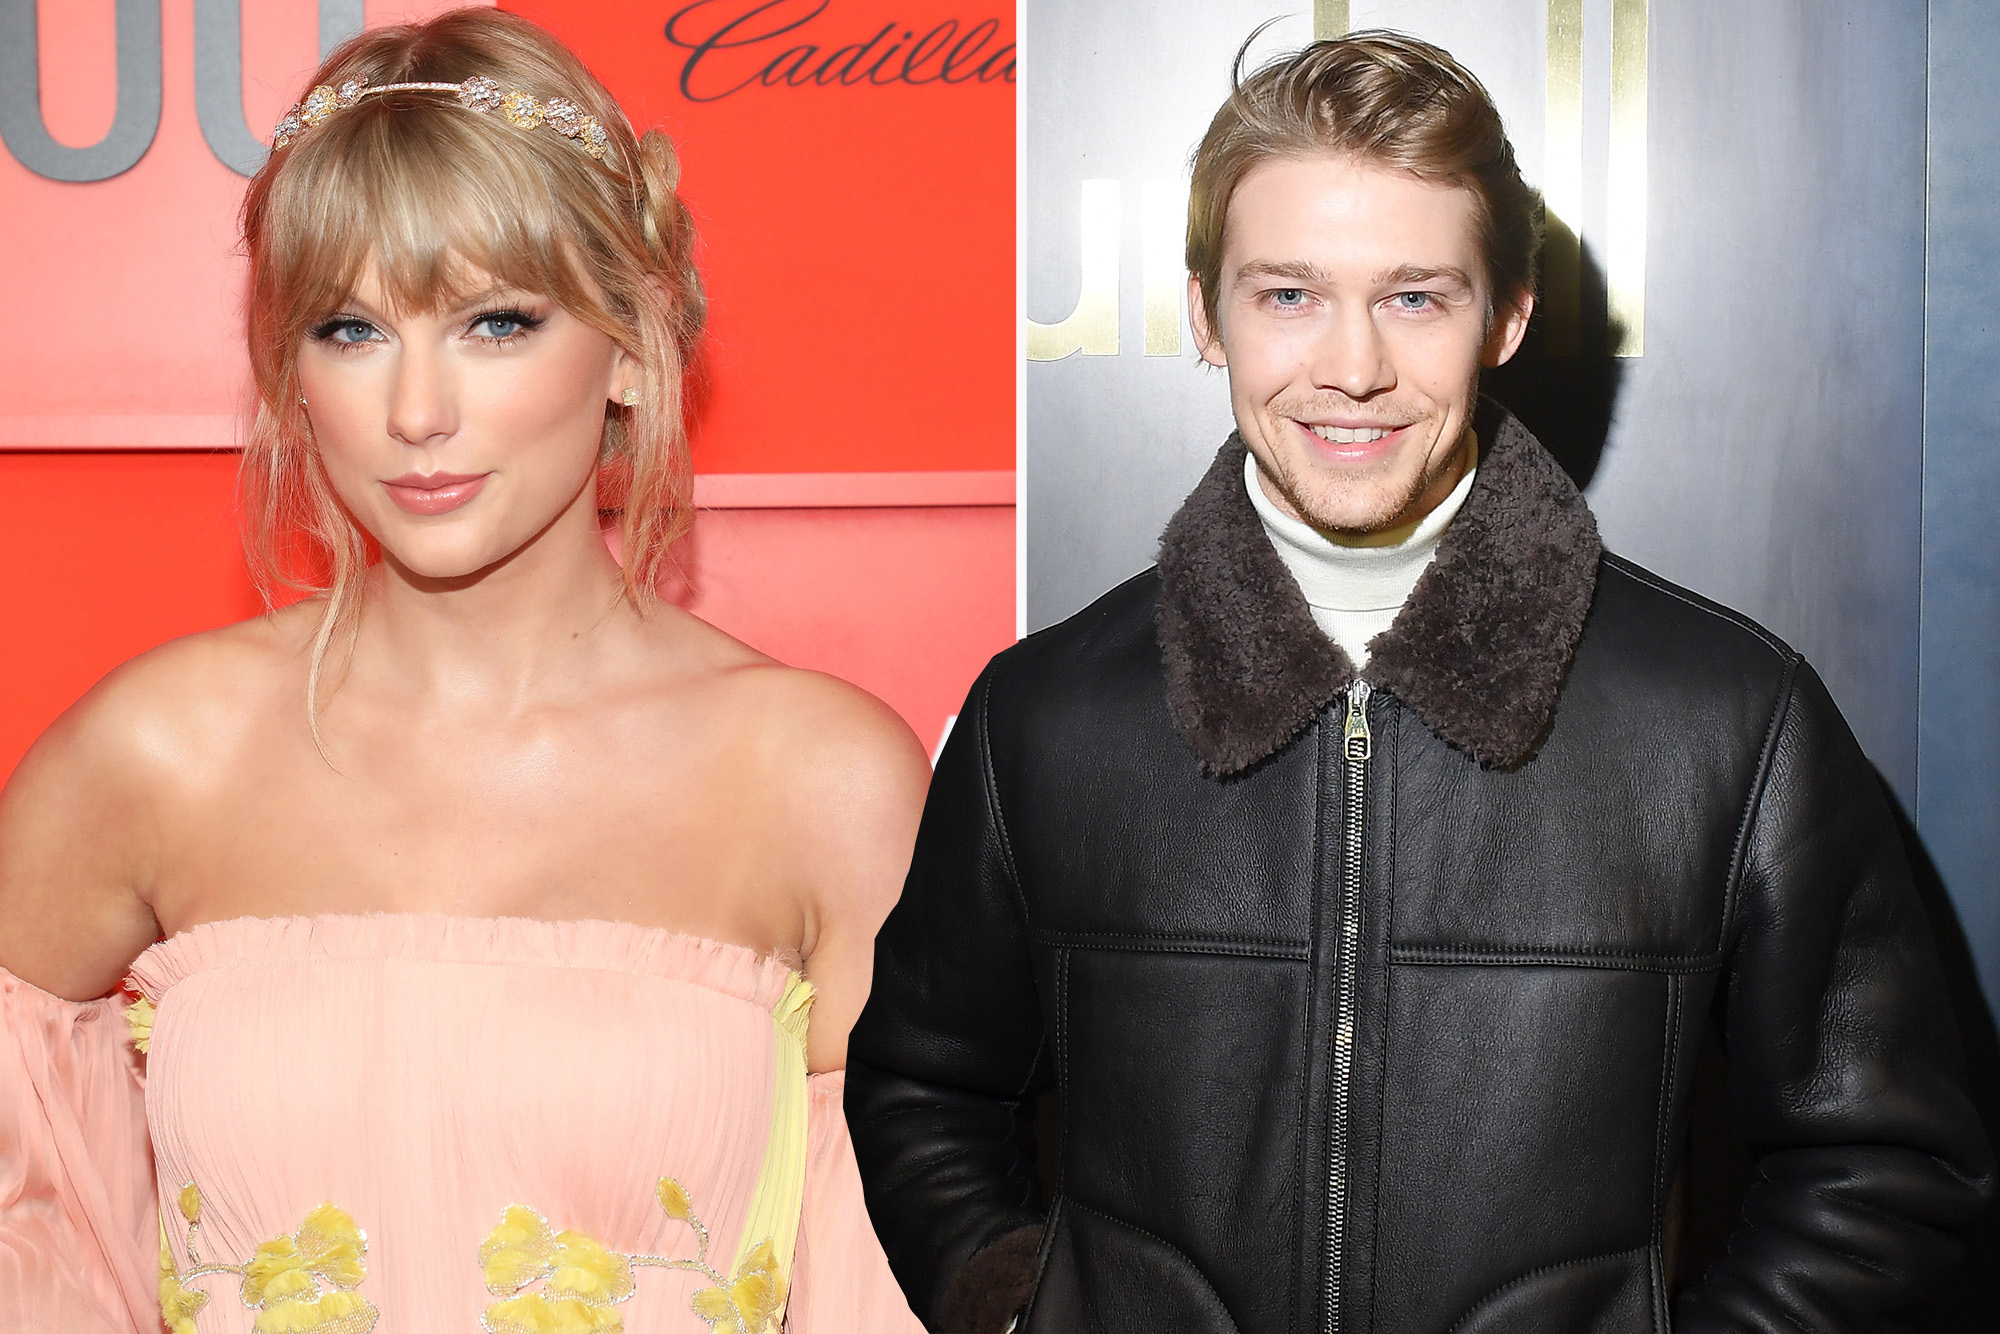 Taylor Swift opens up about personal life in Sir Paul McCartney interview